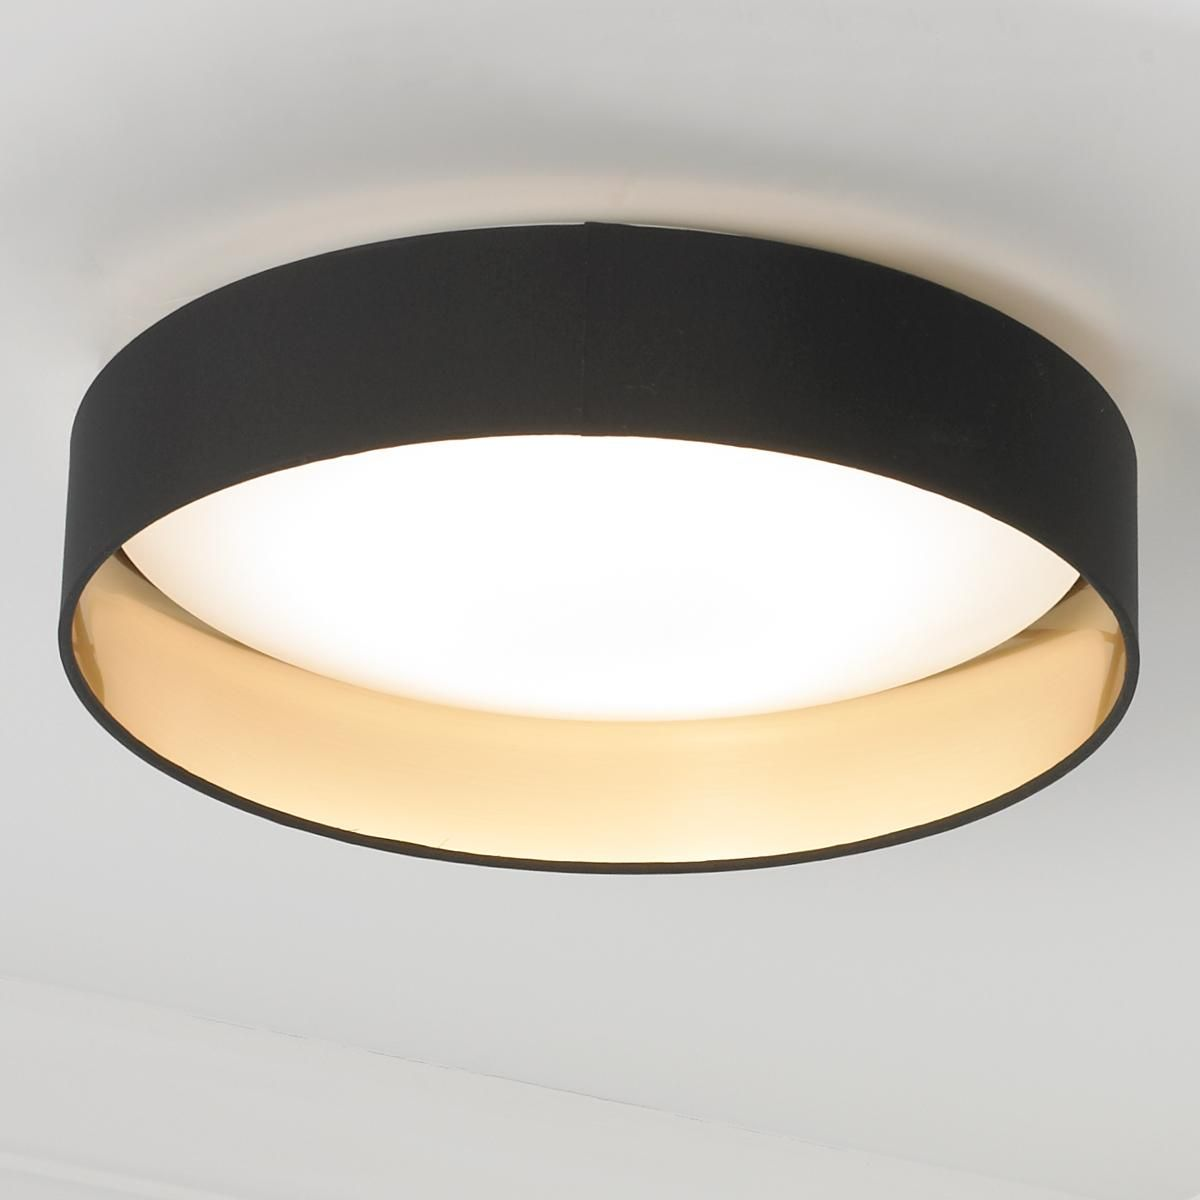 Modern ringed led ceiling light ceiling lights and for Led deckenleuchte modern